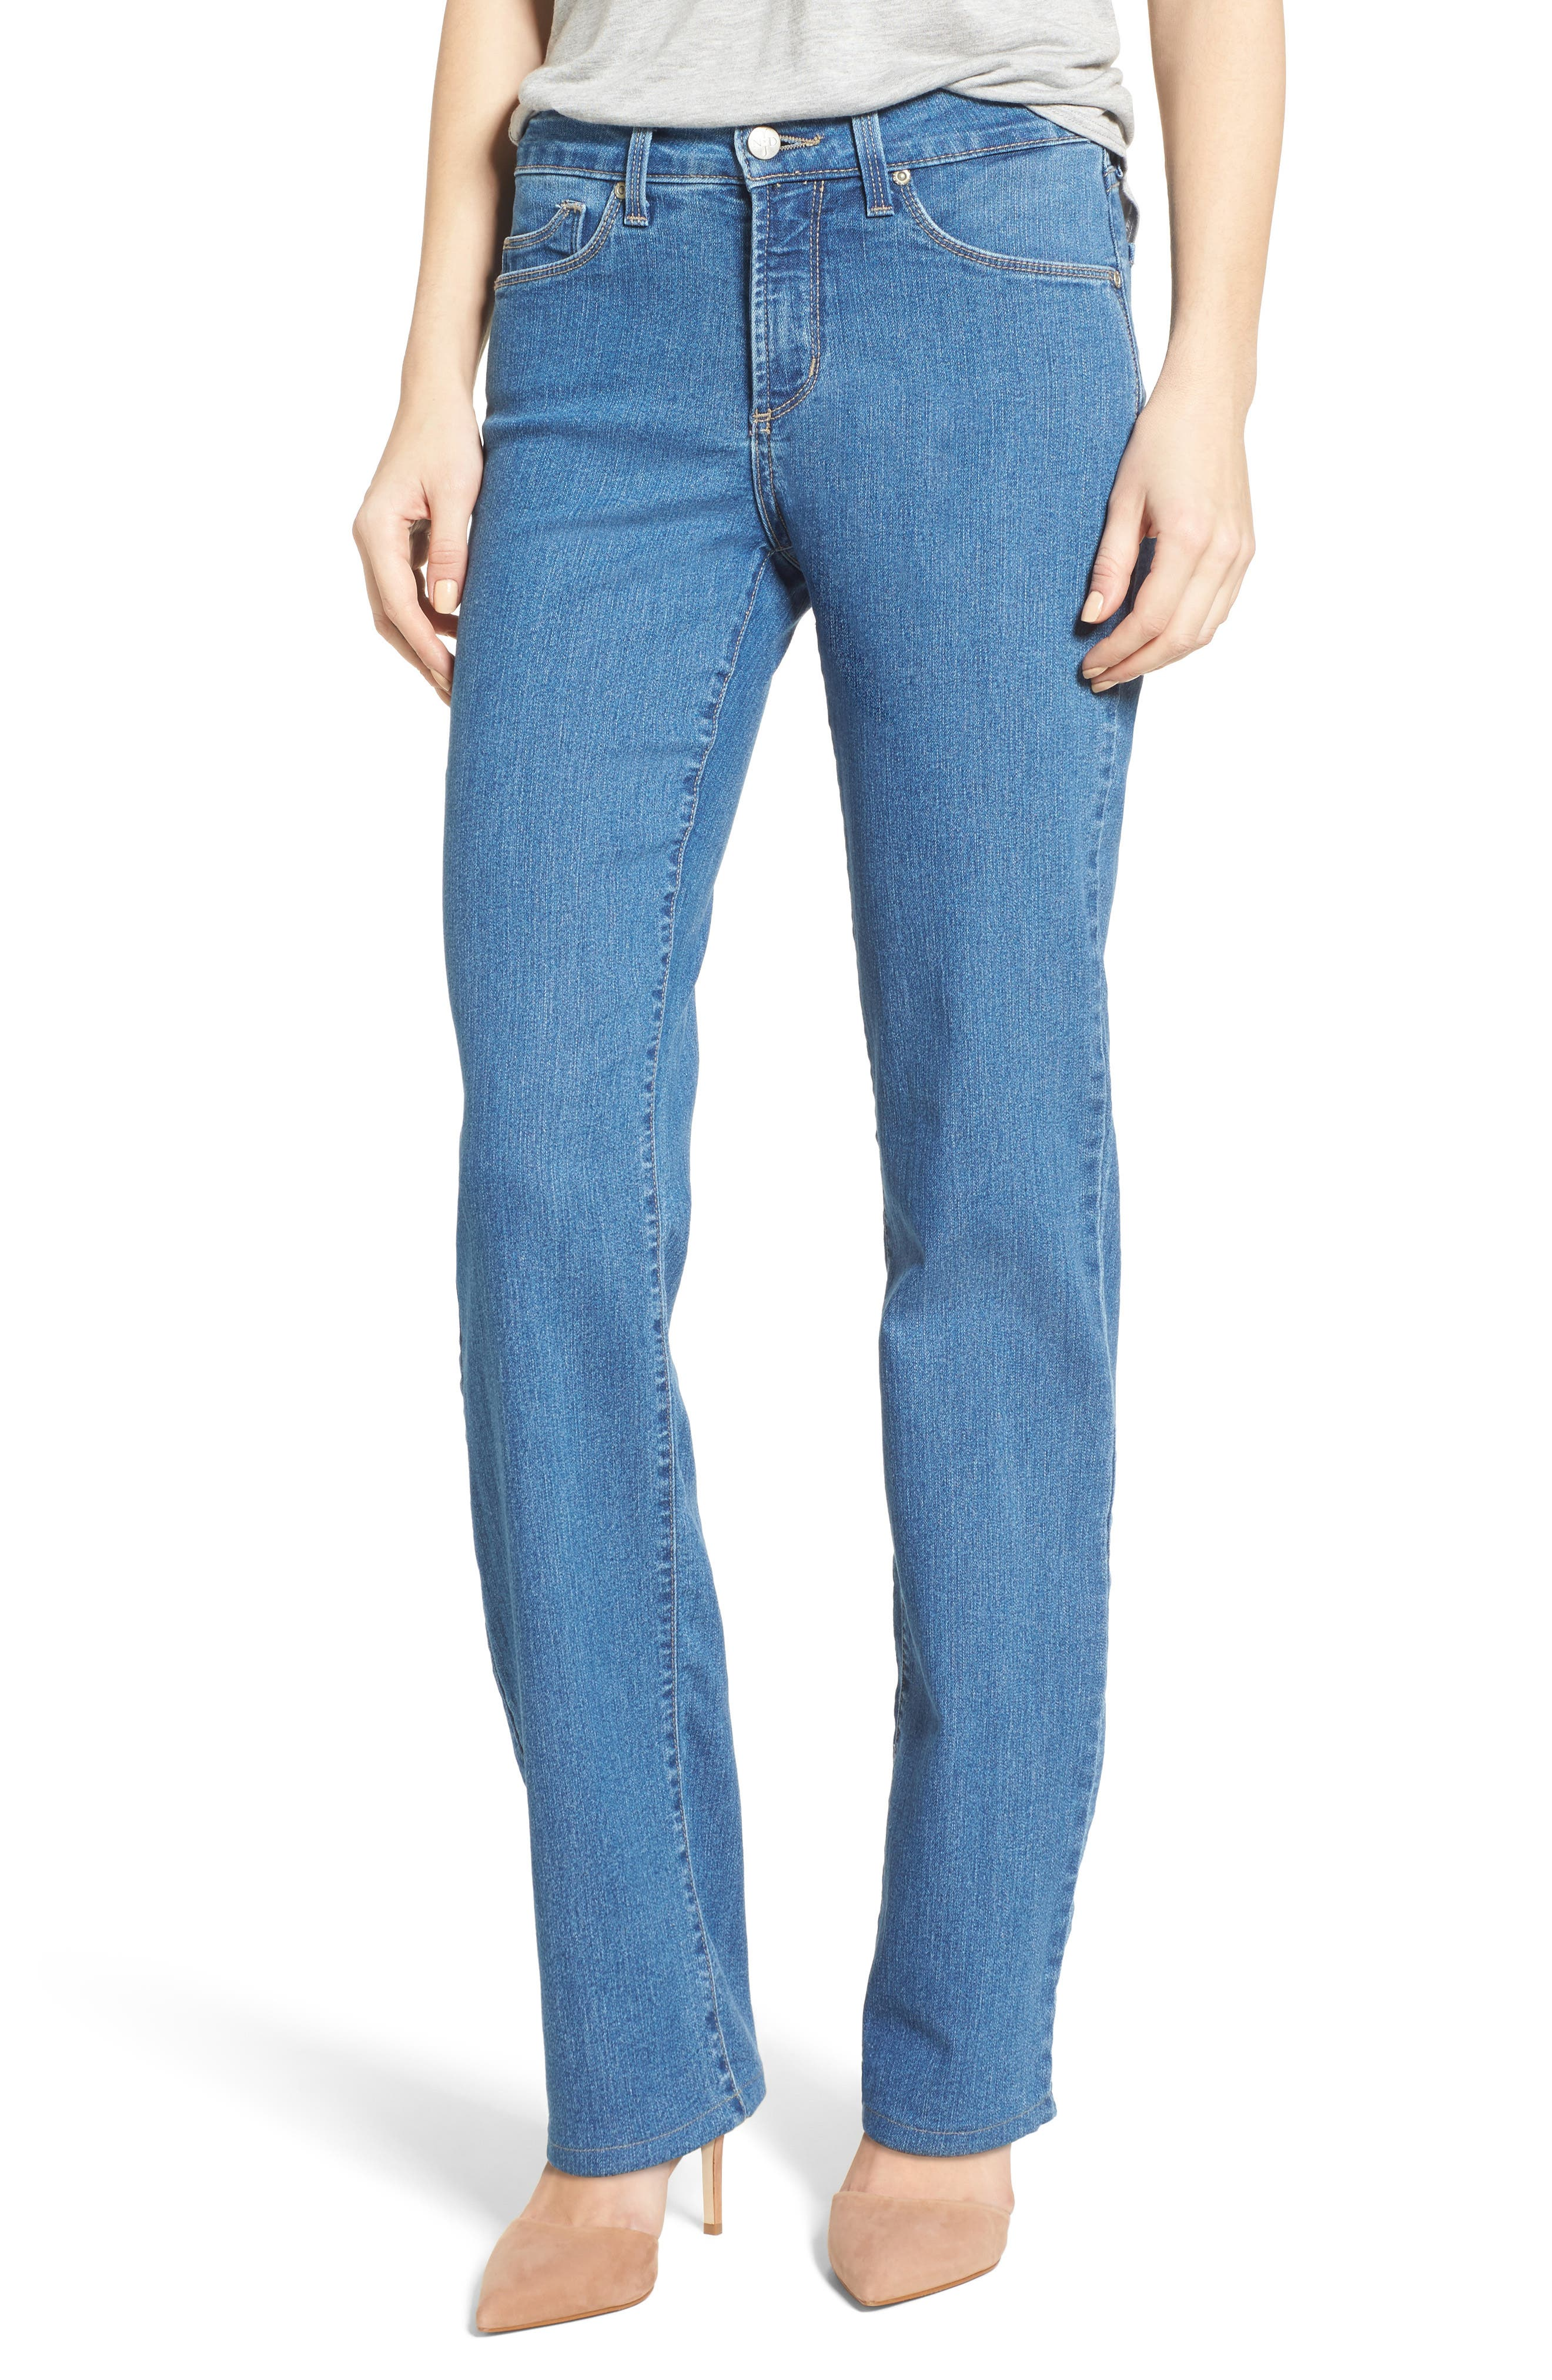 Alternate Image 1 Selected - NYDJ Marilyn Stretch Straight Leg Jeans (Monrovia)